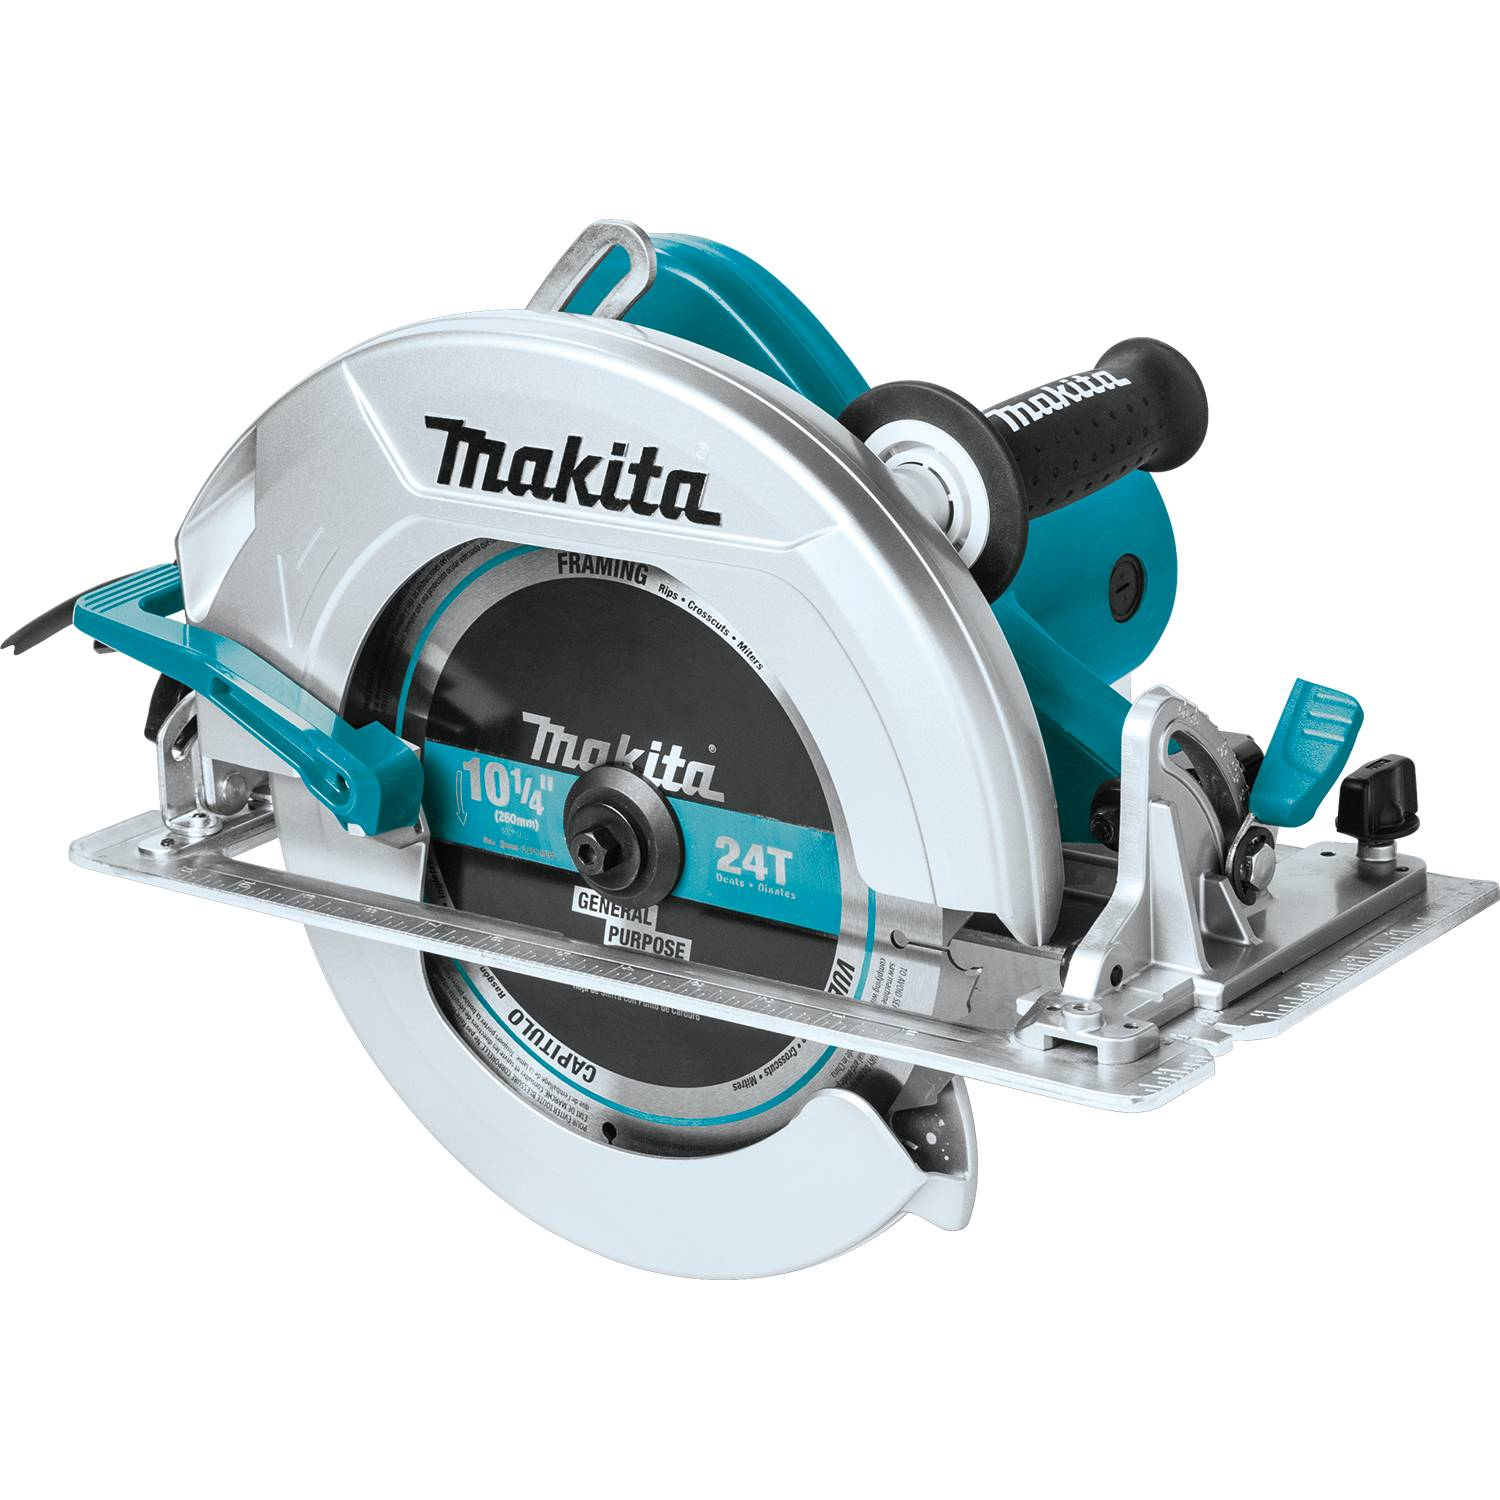 Makita hs0600 1014 inch circular saw cuts 4x lumber in one pass are you a circular saw user and want to cut 4x lumber 44s 46s in one pass makita just announced a solution for you with their makita hs0600 1014 greentooth Images